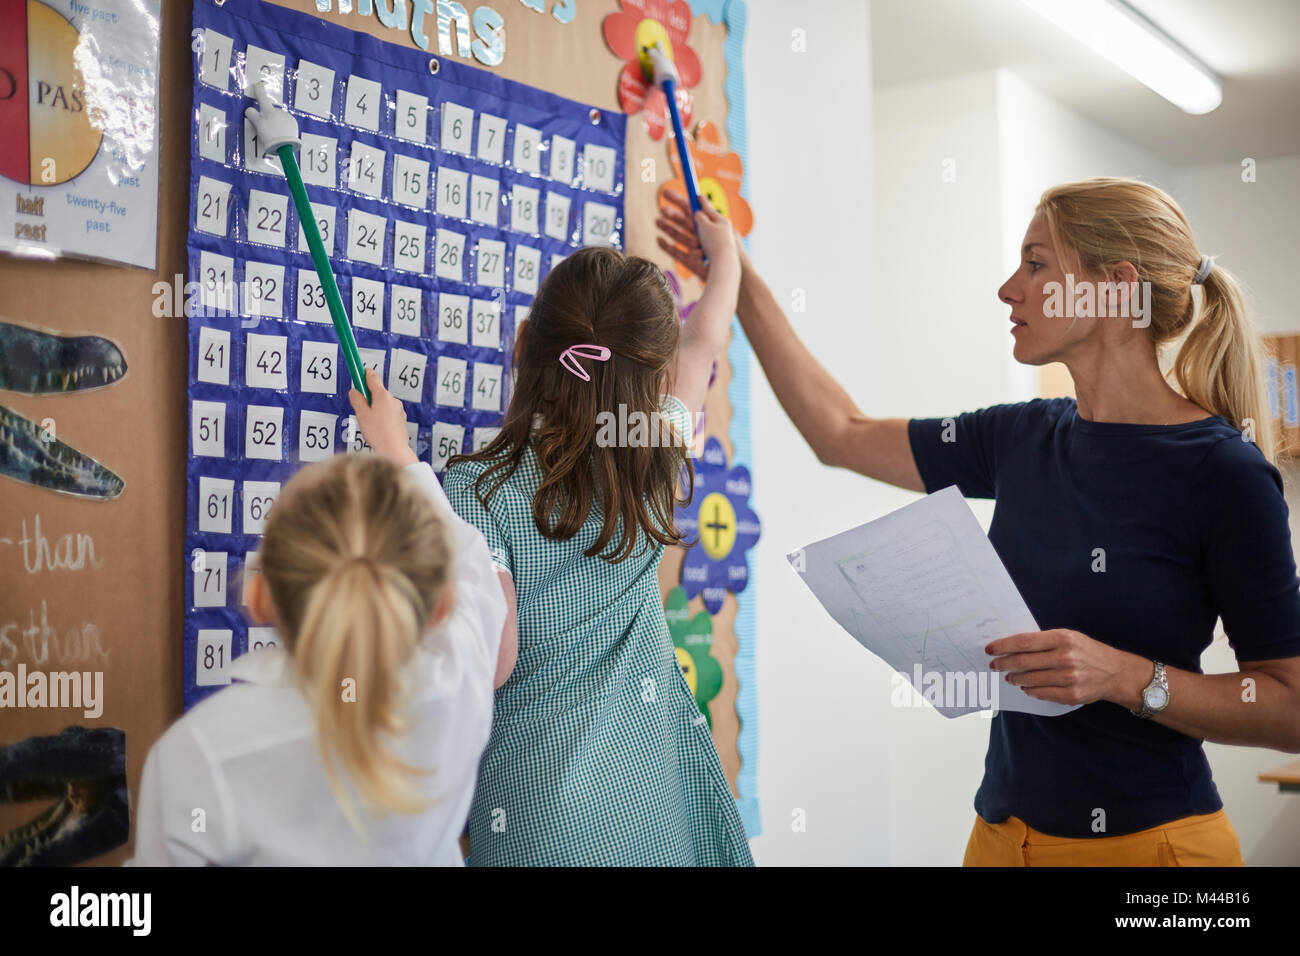 Teacher with schoolgirls pointing at number wall chart in classroom at primary school - Stock Image